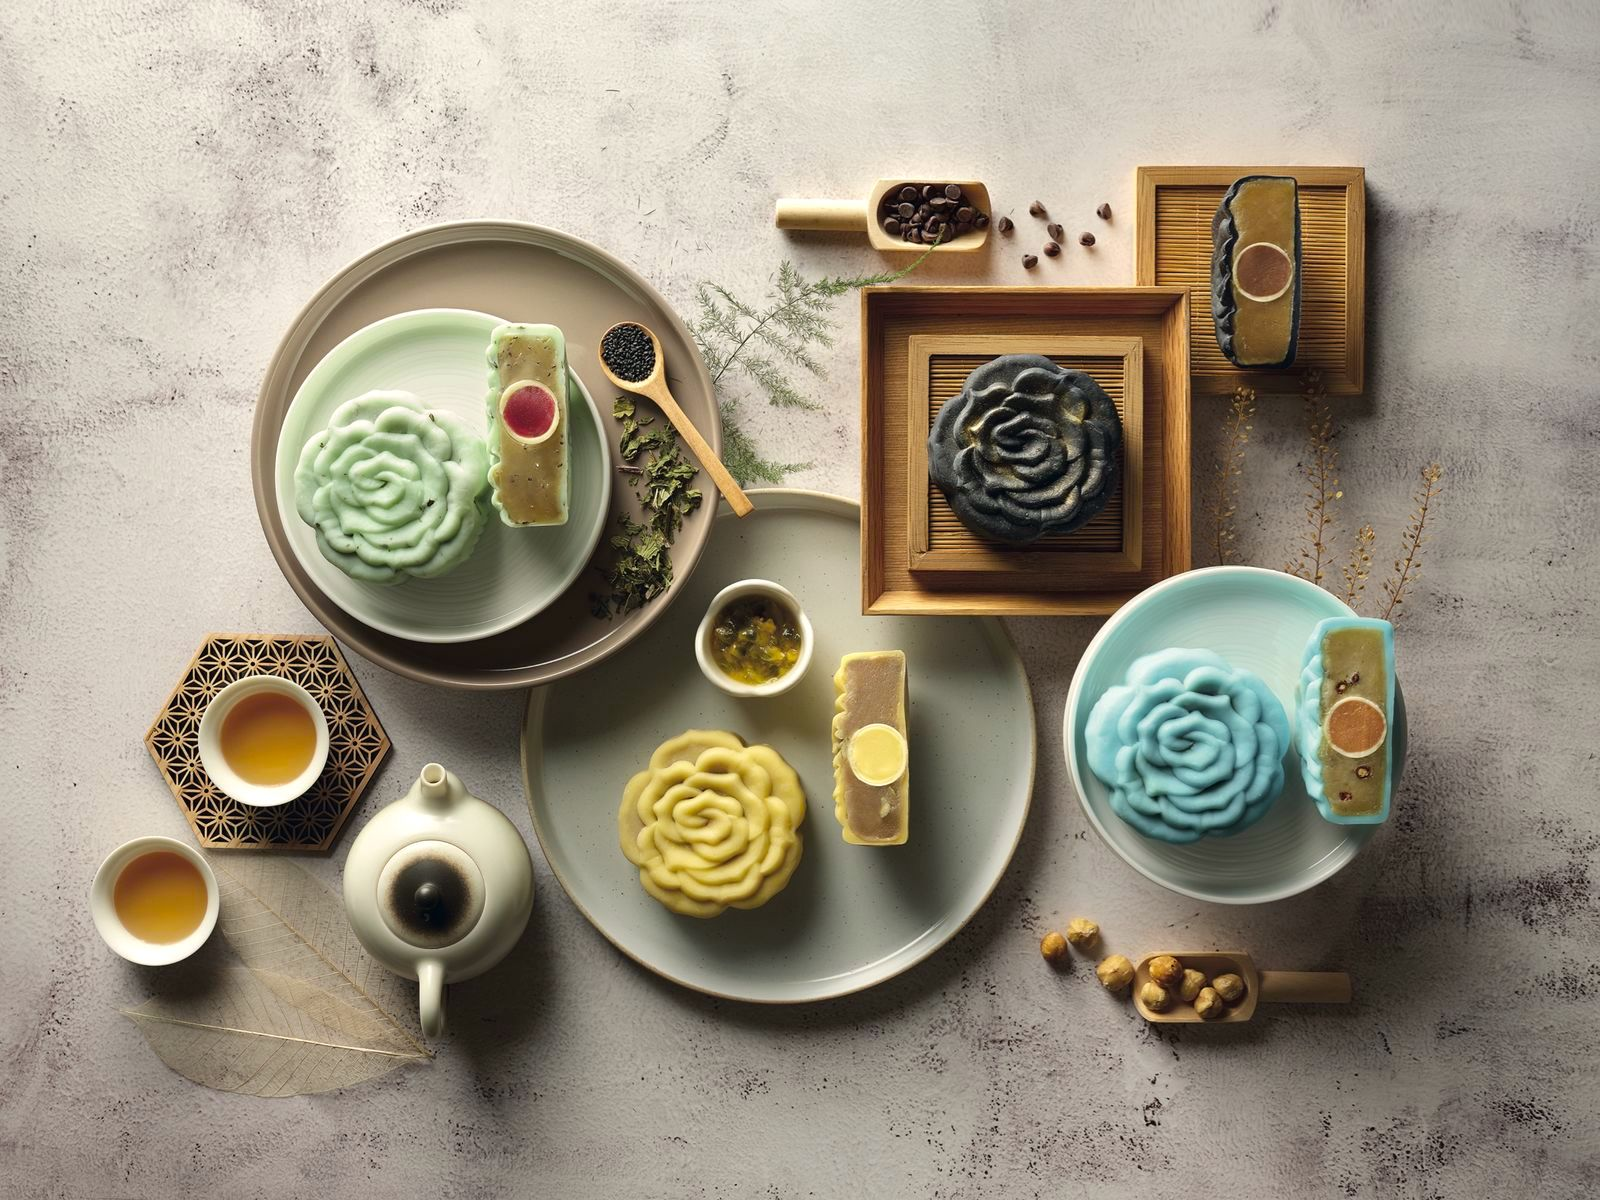 Where to find some of the tastiest mooncakes mooncakes